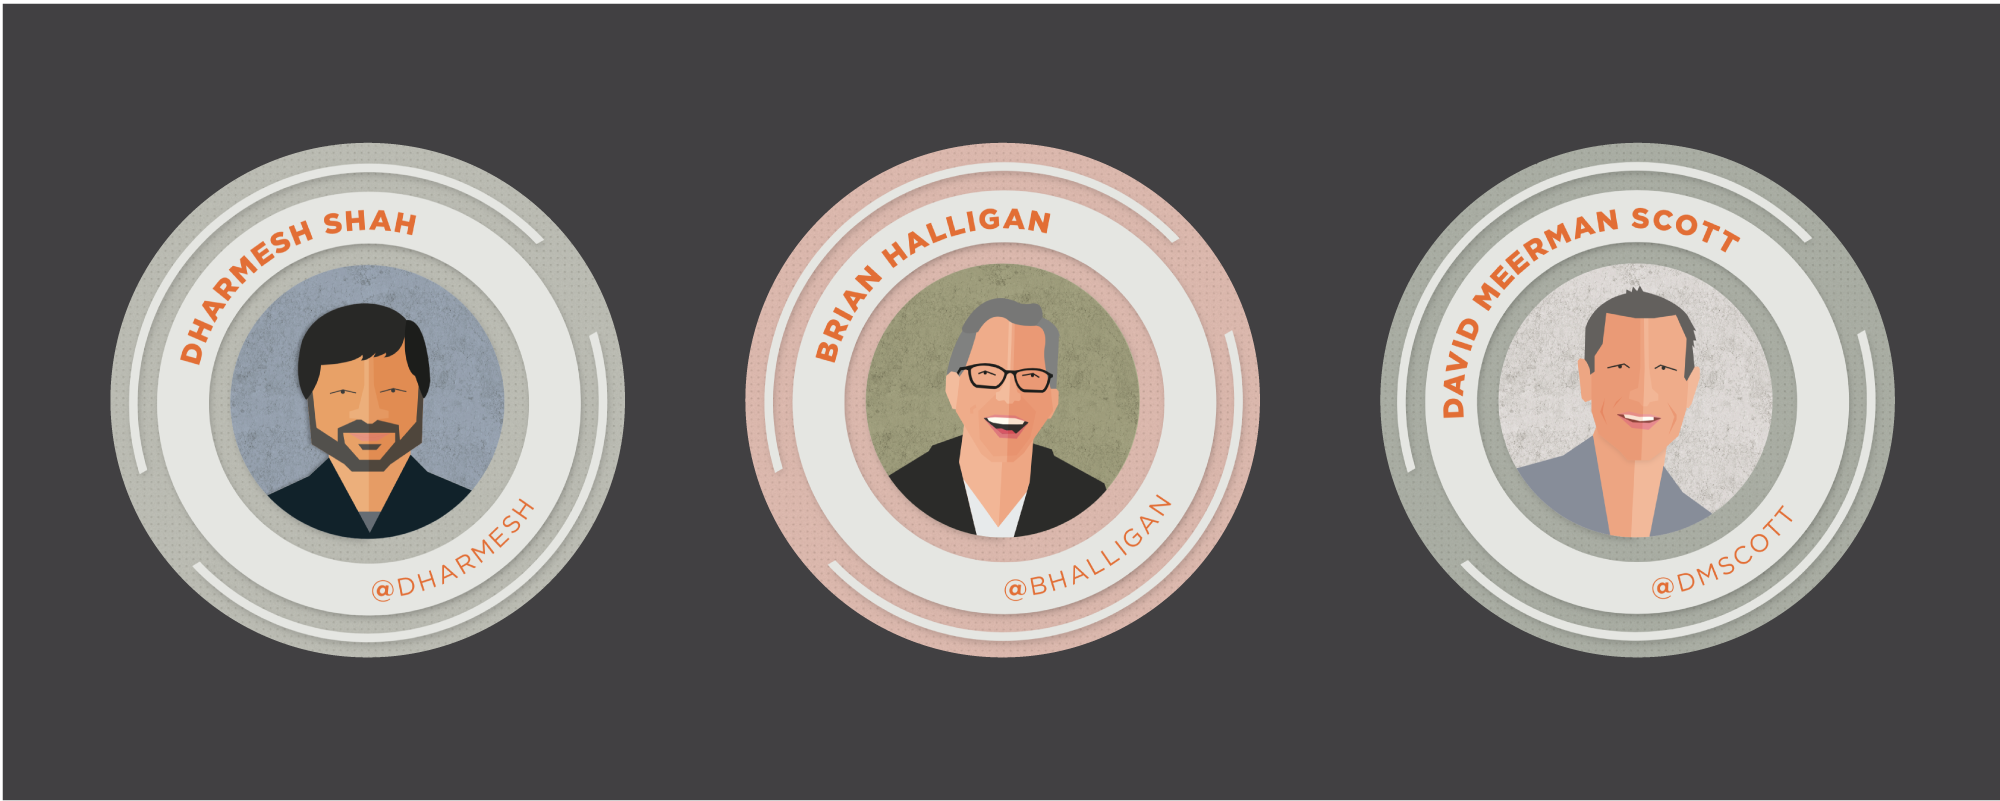 grace-johnson-design-illustrations-hubspot-portraits-2@2x.png